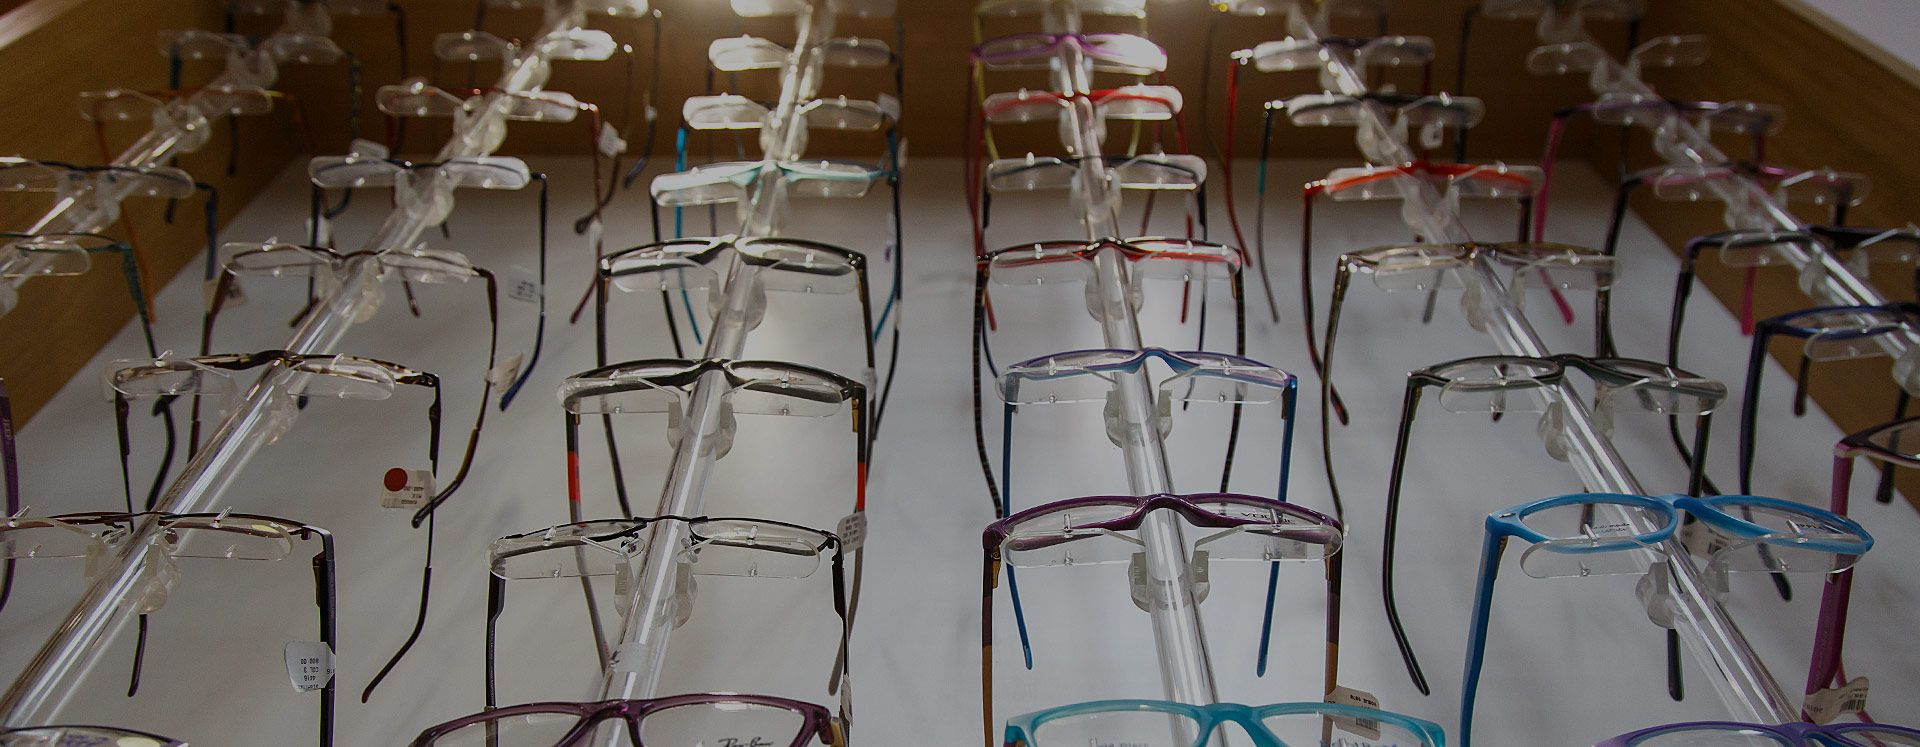 Our range of glasses